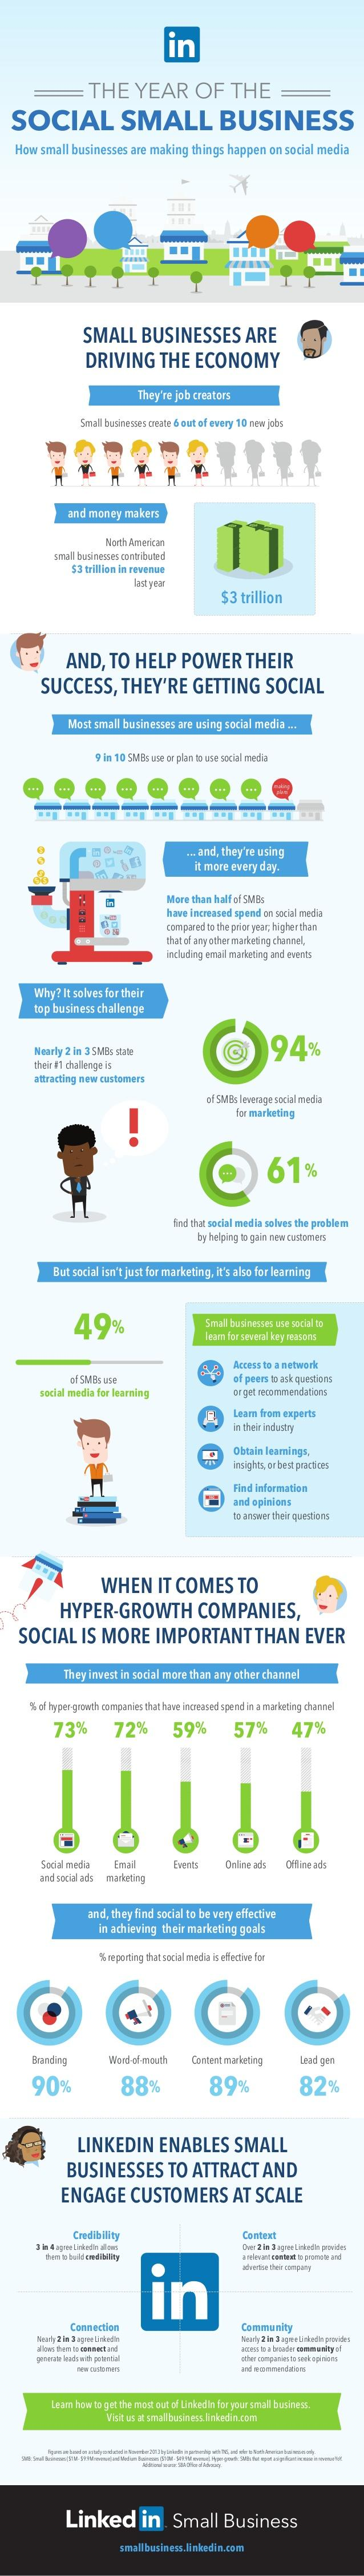 How Small Business are Making Things Happen on Social Media in 2014 [INFOGRAPHIC]